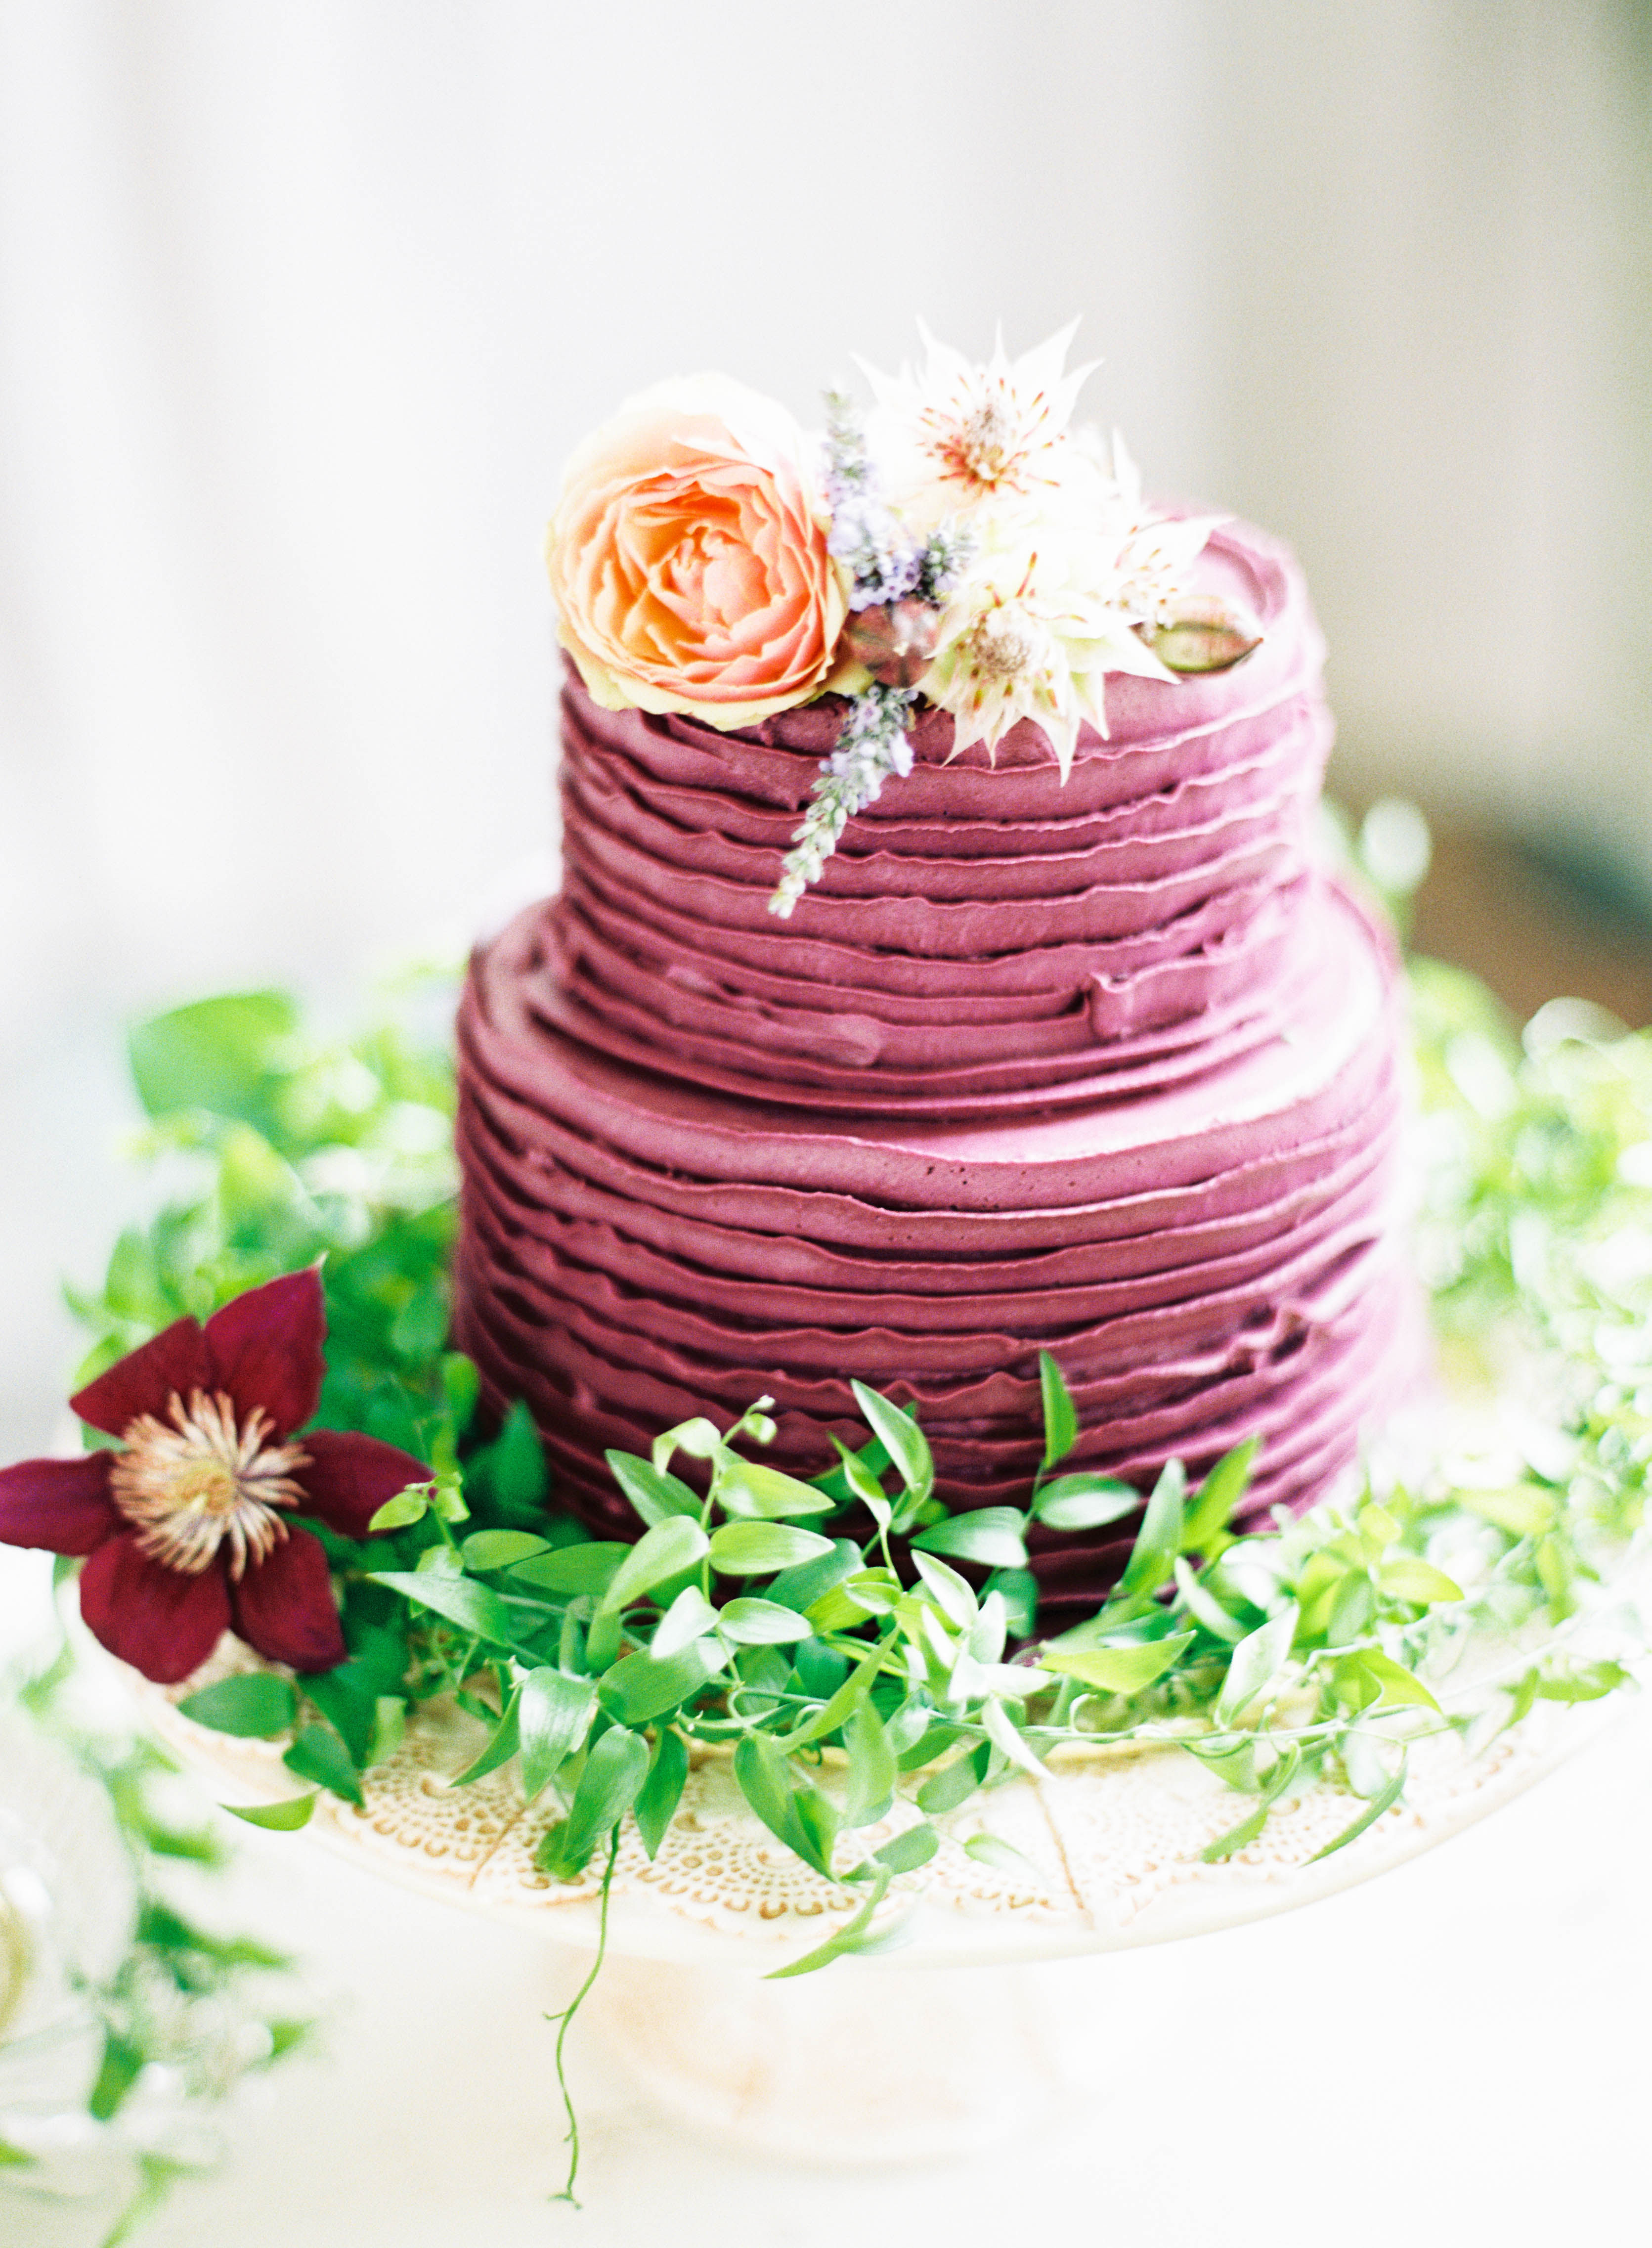 Purple Deckle-Edged Cake with Flowers